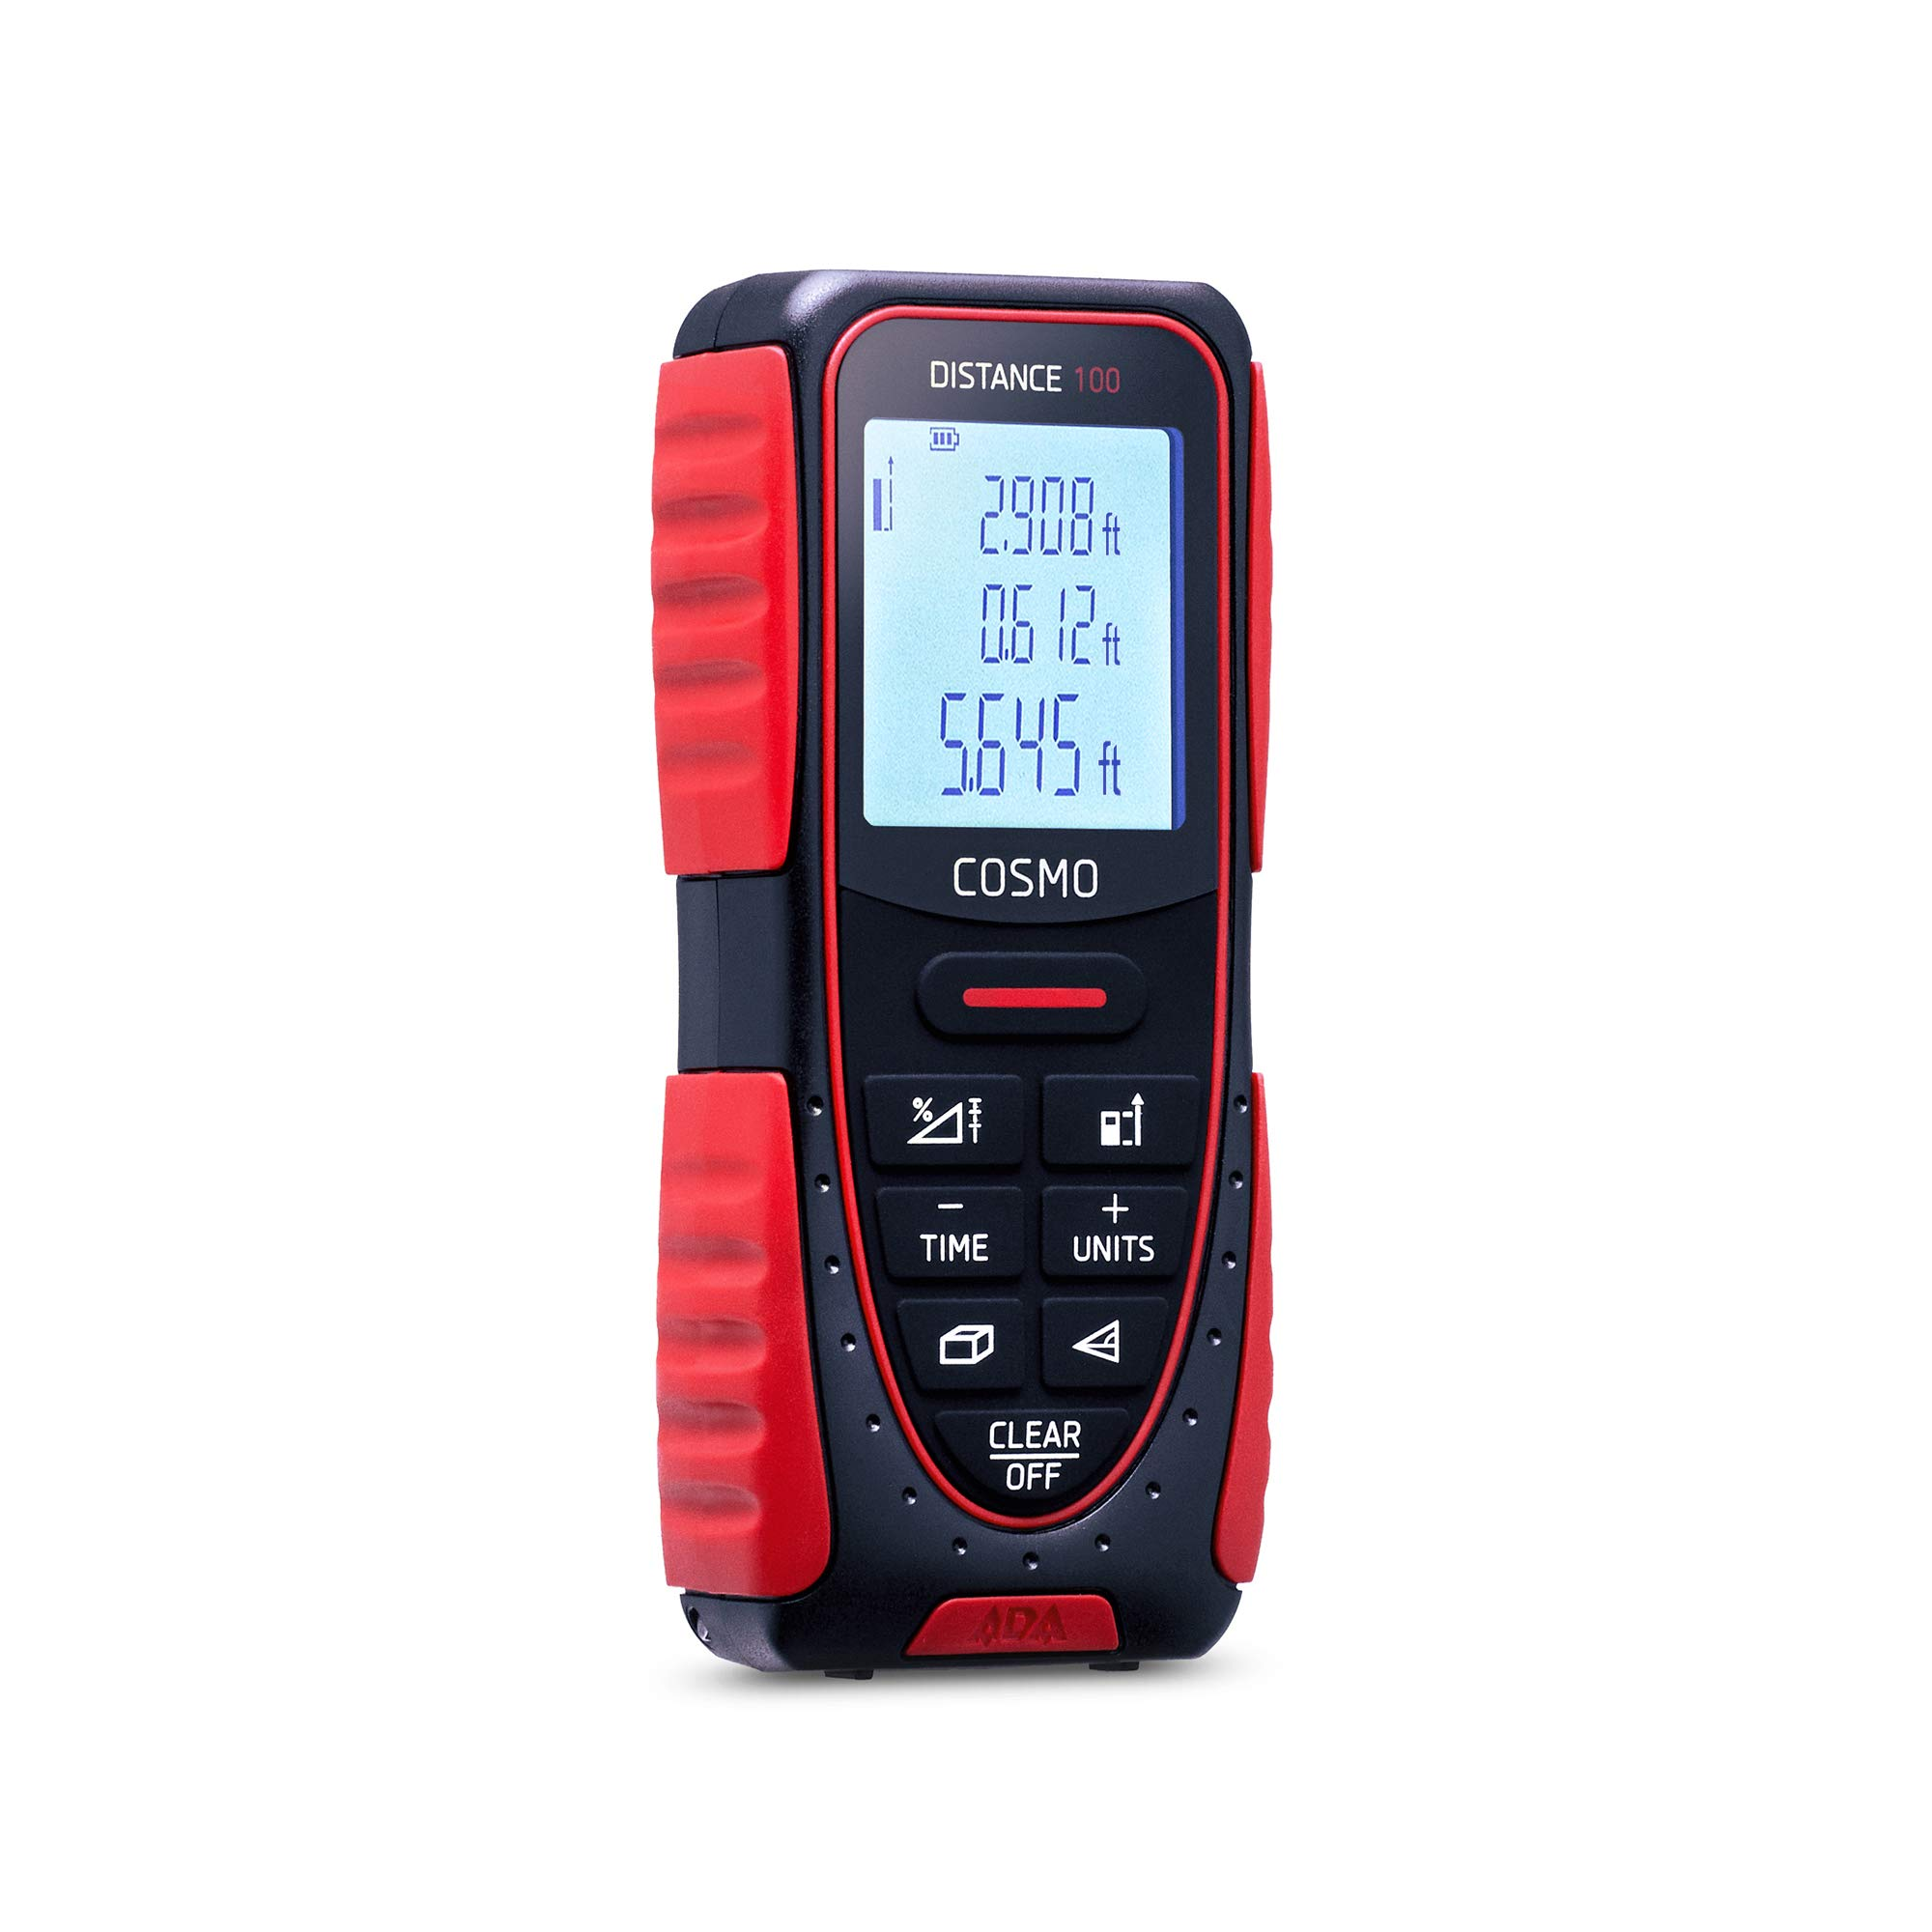 ADA Cosmo 100, Laser Distance Measure 328 Feet, Professional Digital Laser Distance Meter with LCD Display (А00412)